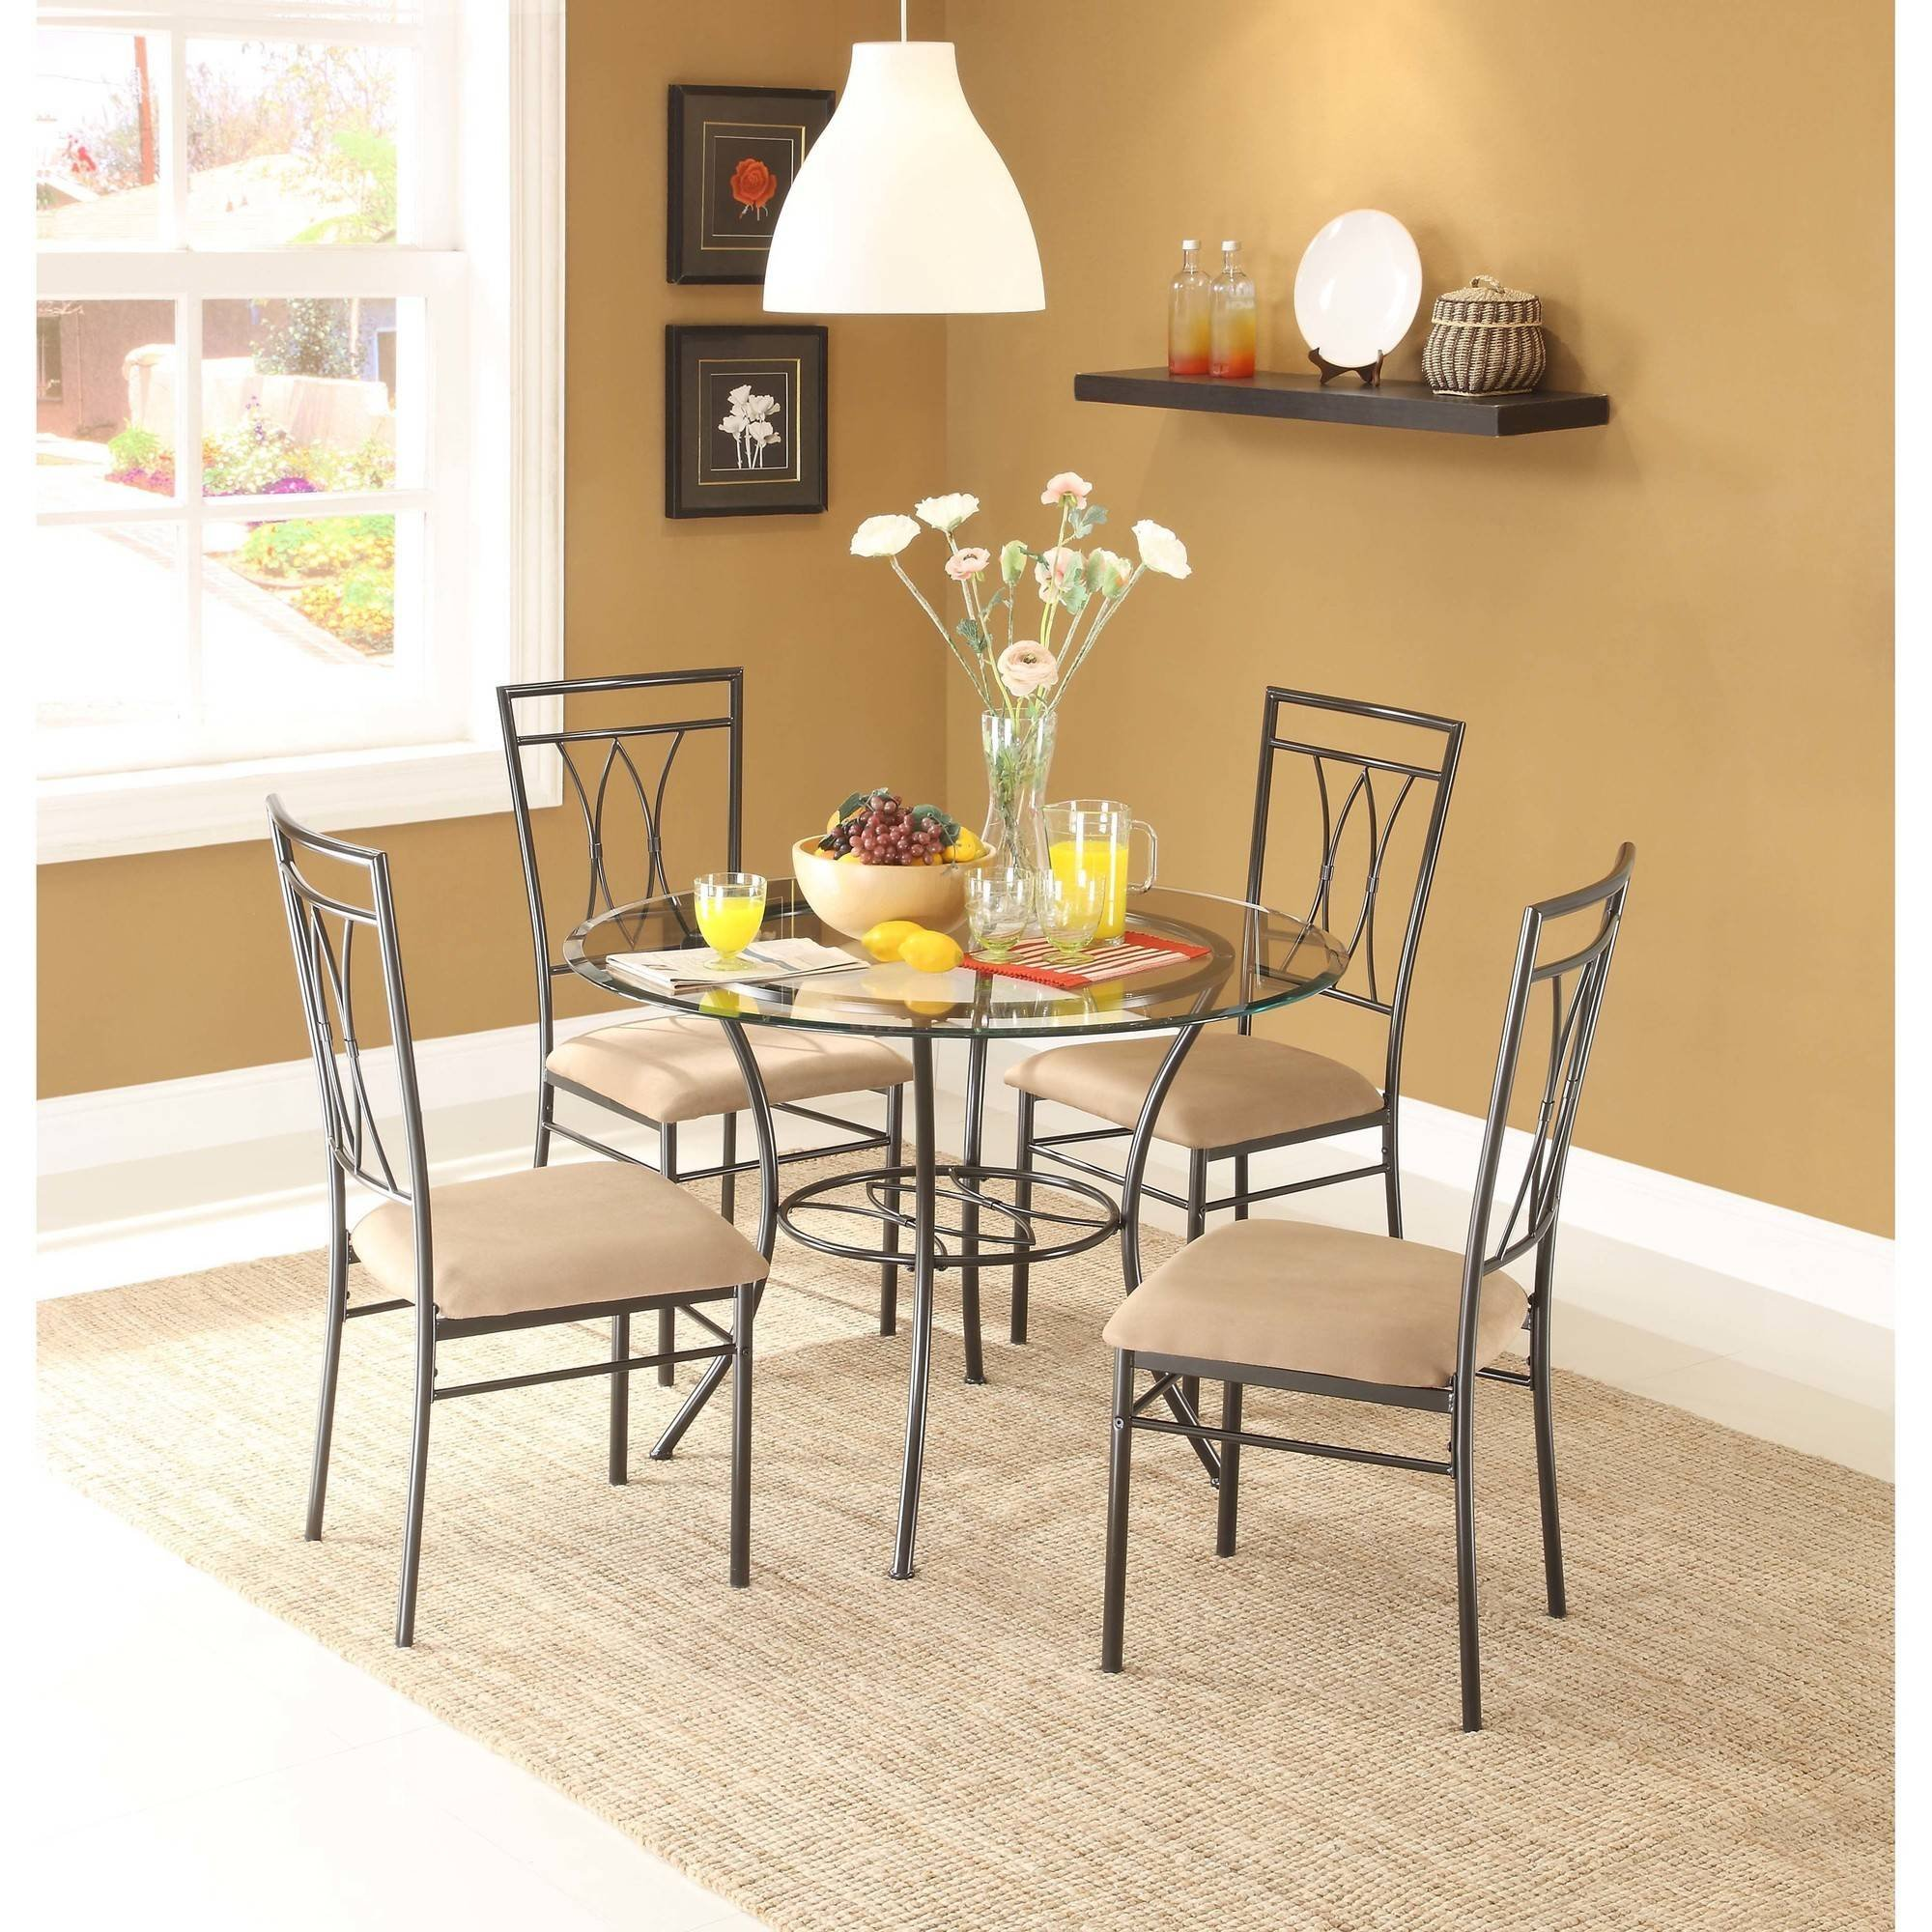 """Dining Set Metal Chairs Kitchen Table Furniture Modern Wood 4 Breakfast 5 Piece Stylish Apartment Home Side, Table size: 42""""L x 42""""W x 30""""H, Chair size: 18.5""""L x 18.5""""W x 39""""H"""